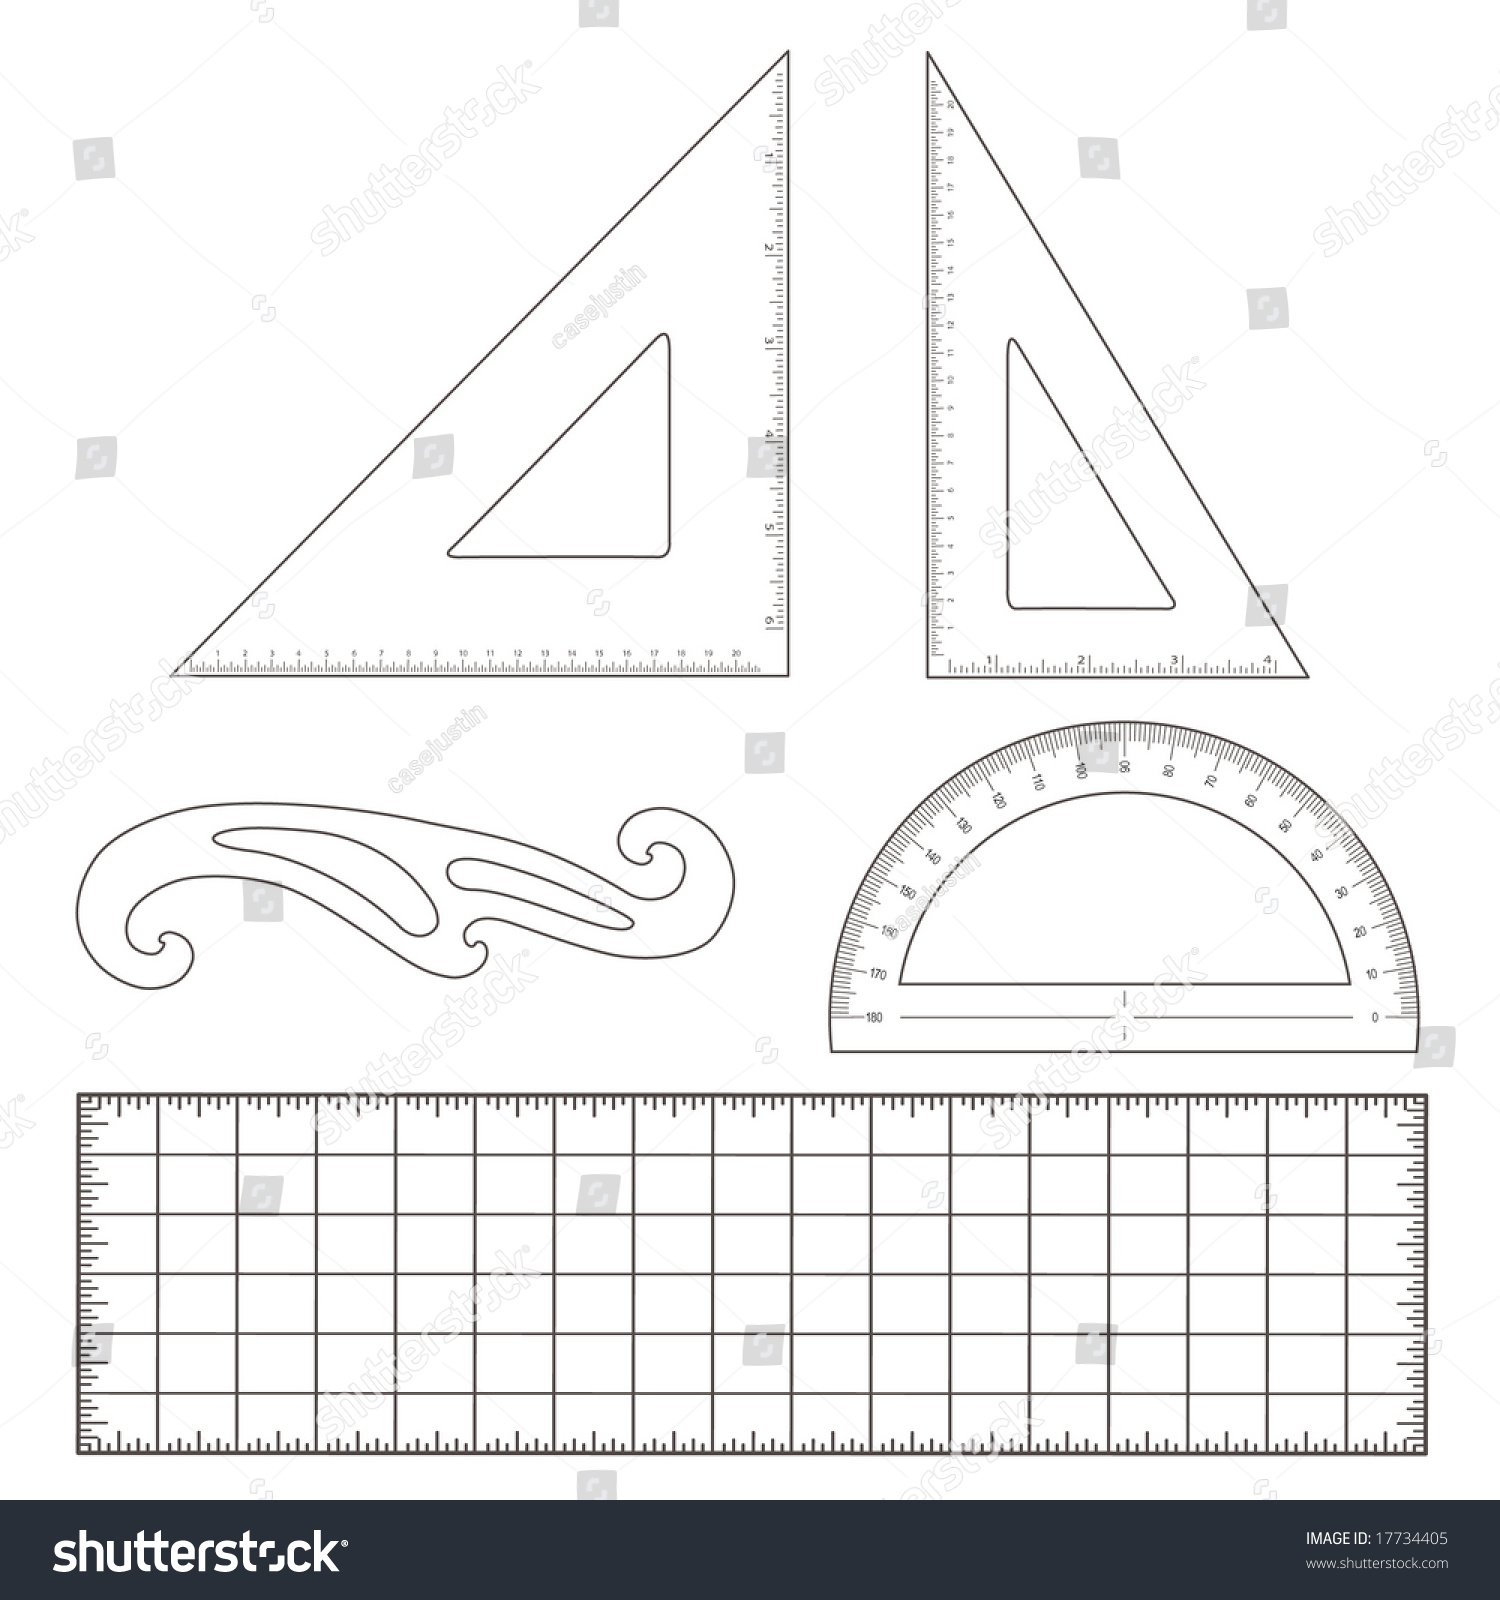 Drafting Tools For Engineering And Architectural Drawing: 45 Degree  Triangle, 60 Degree Triangle,